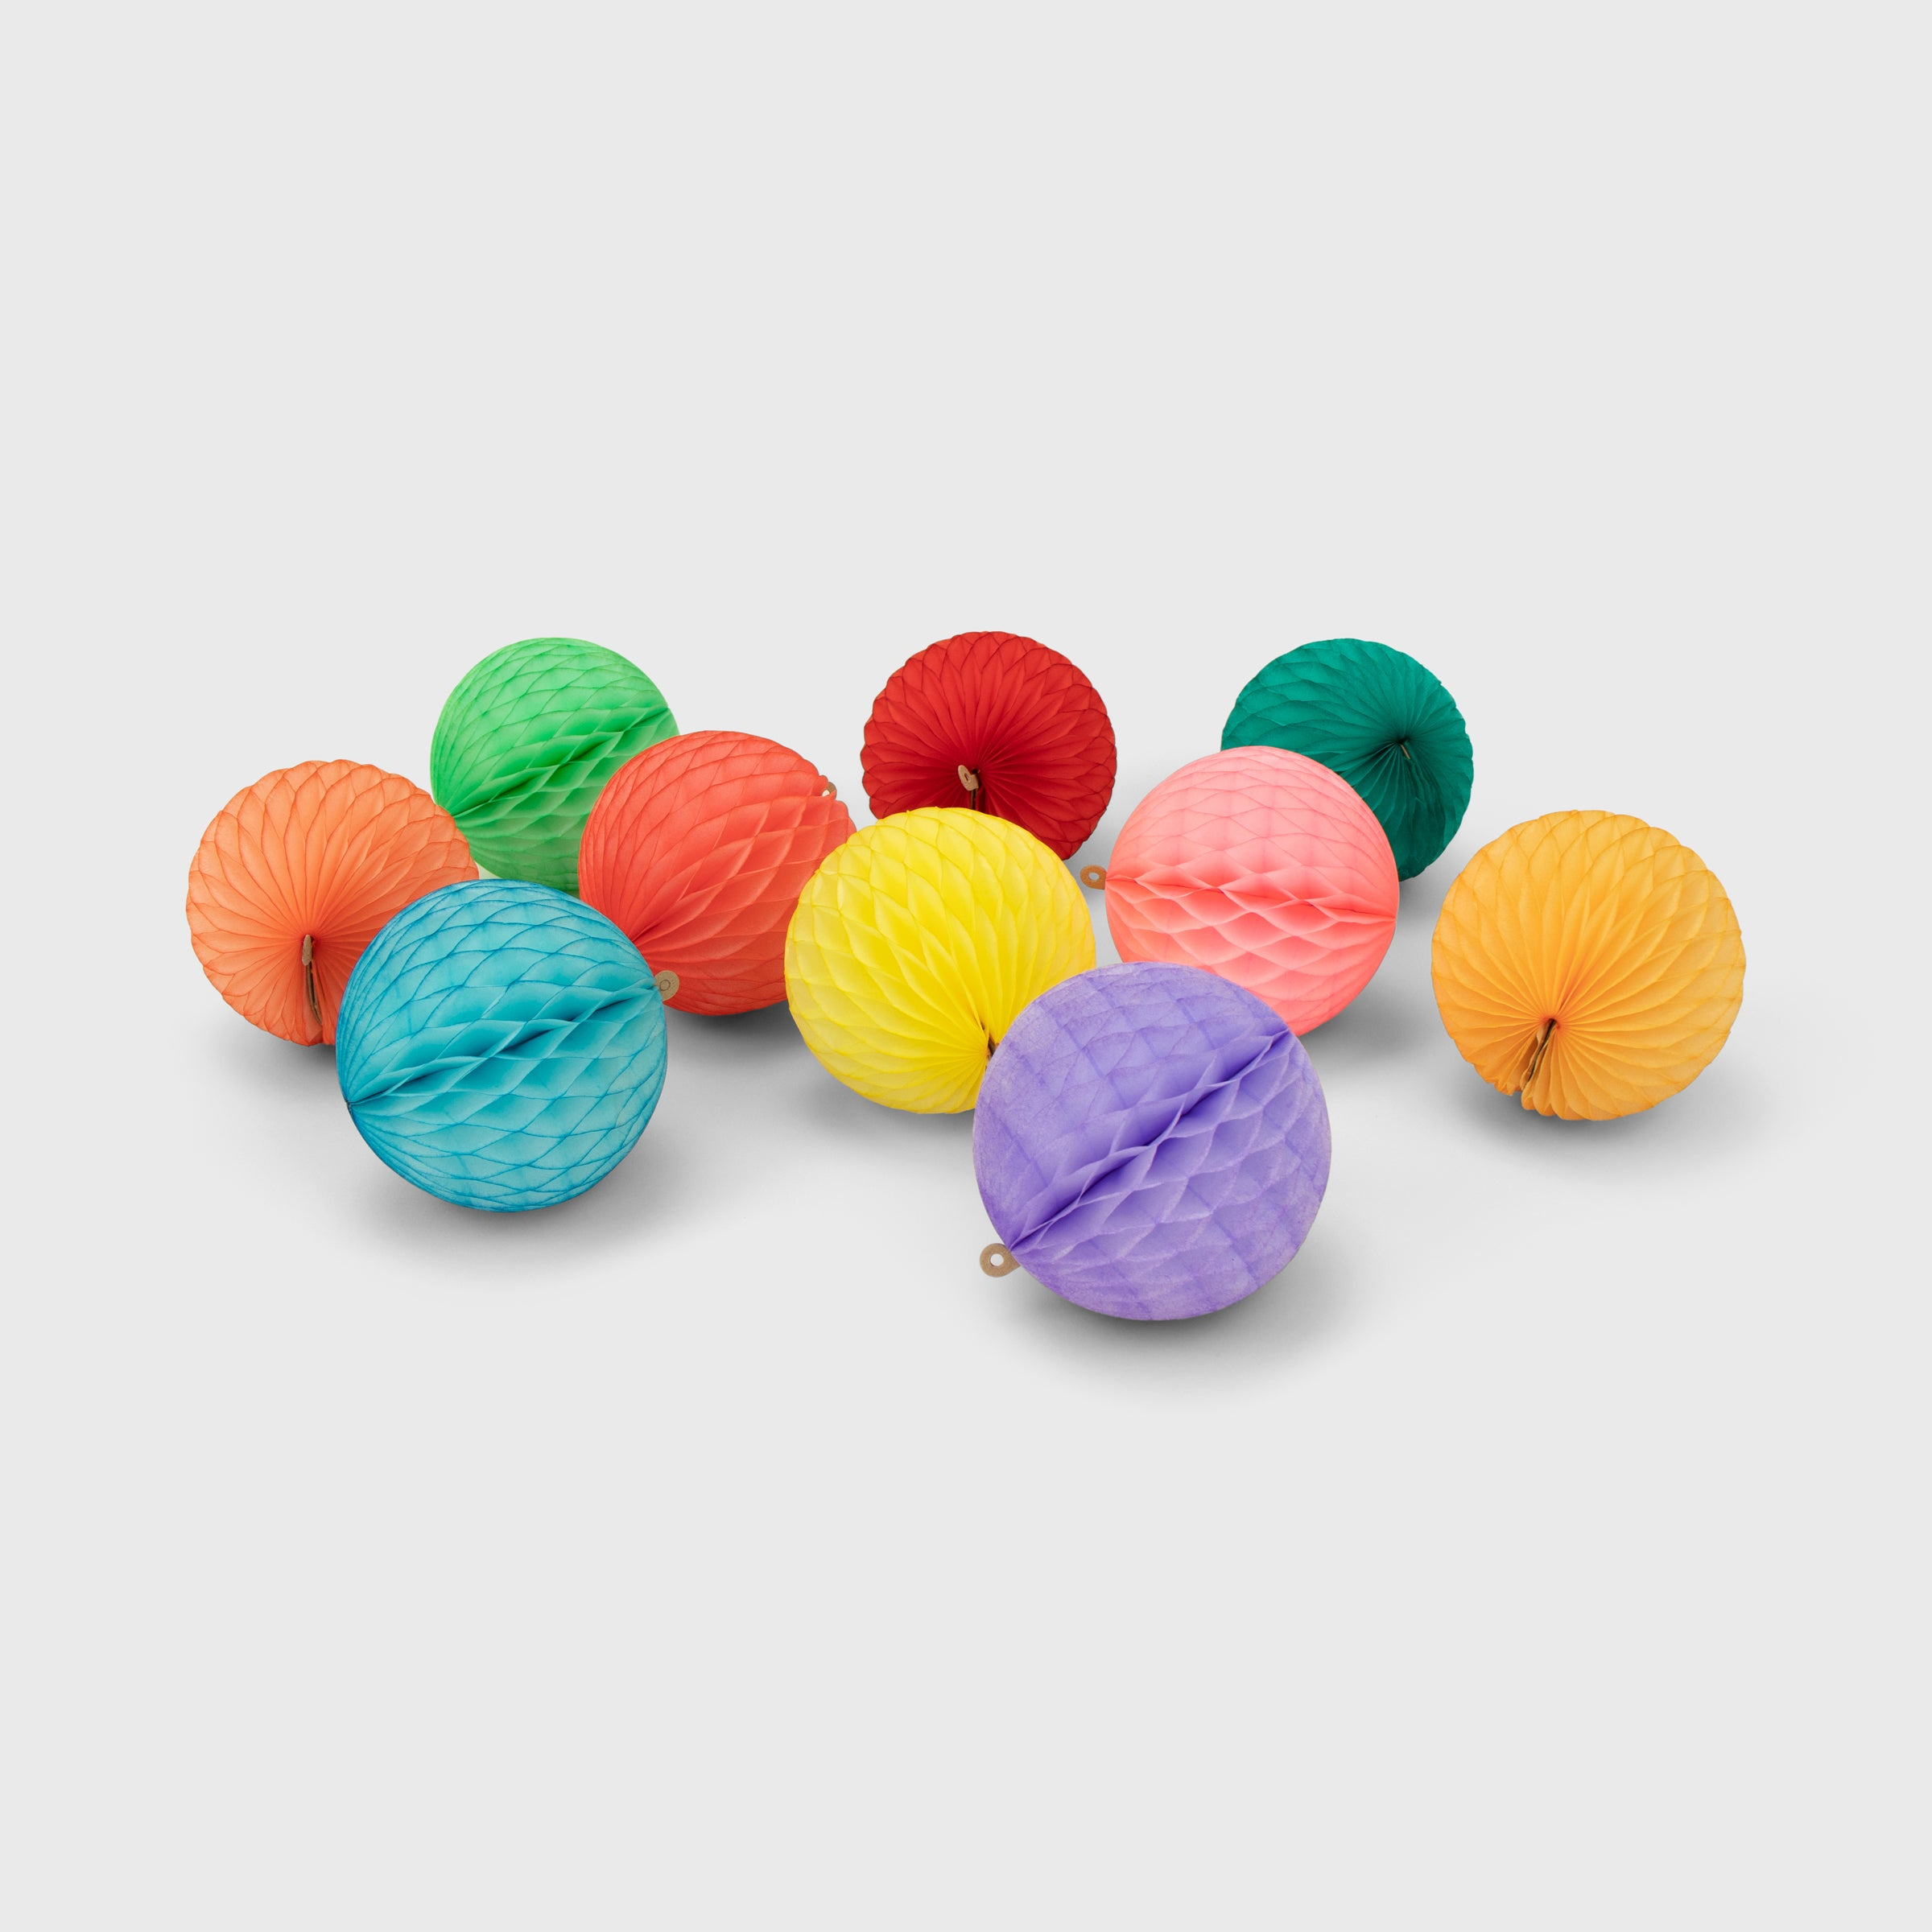 Honeycomb Ball 8 CM, Pastel 10 Pack